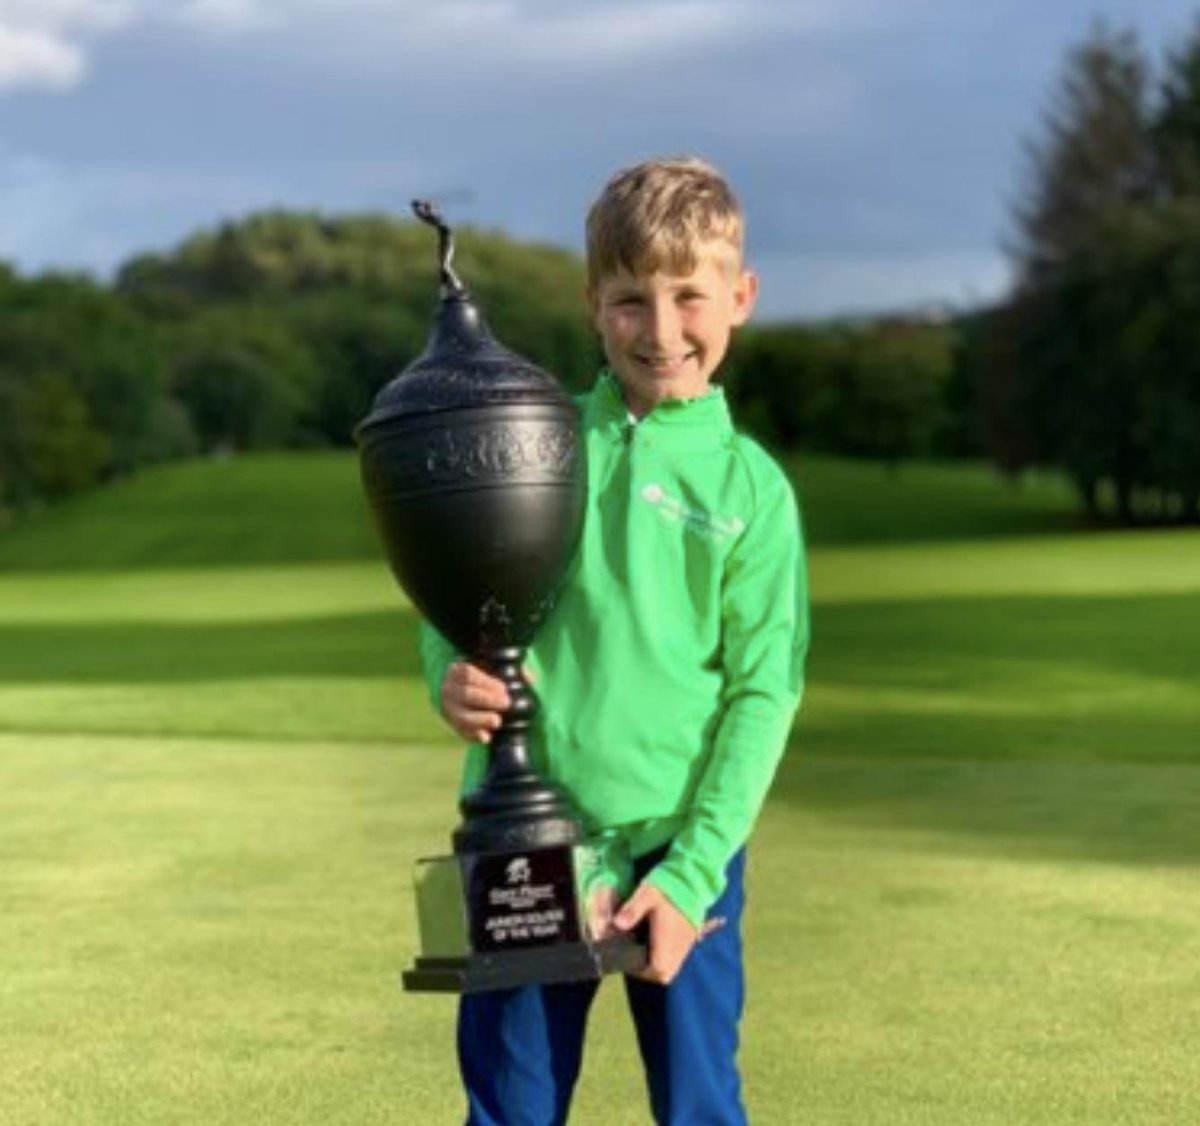 Many Congratulations to the new @IrishJuniorOpen Champion Ruairi Cooper! Continue to follow your dreams and never, ever stop working to achieve more, whether in golf or life. This junior tournament has a special place in my heart as it represents the pure love of the game. GP